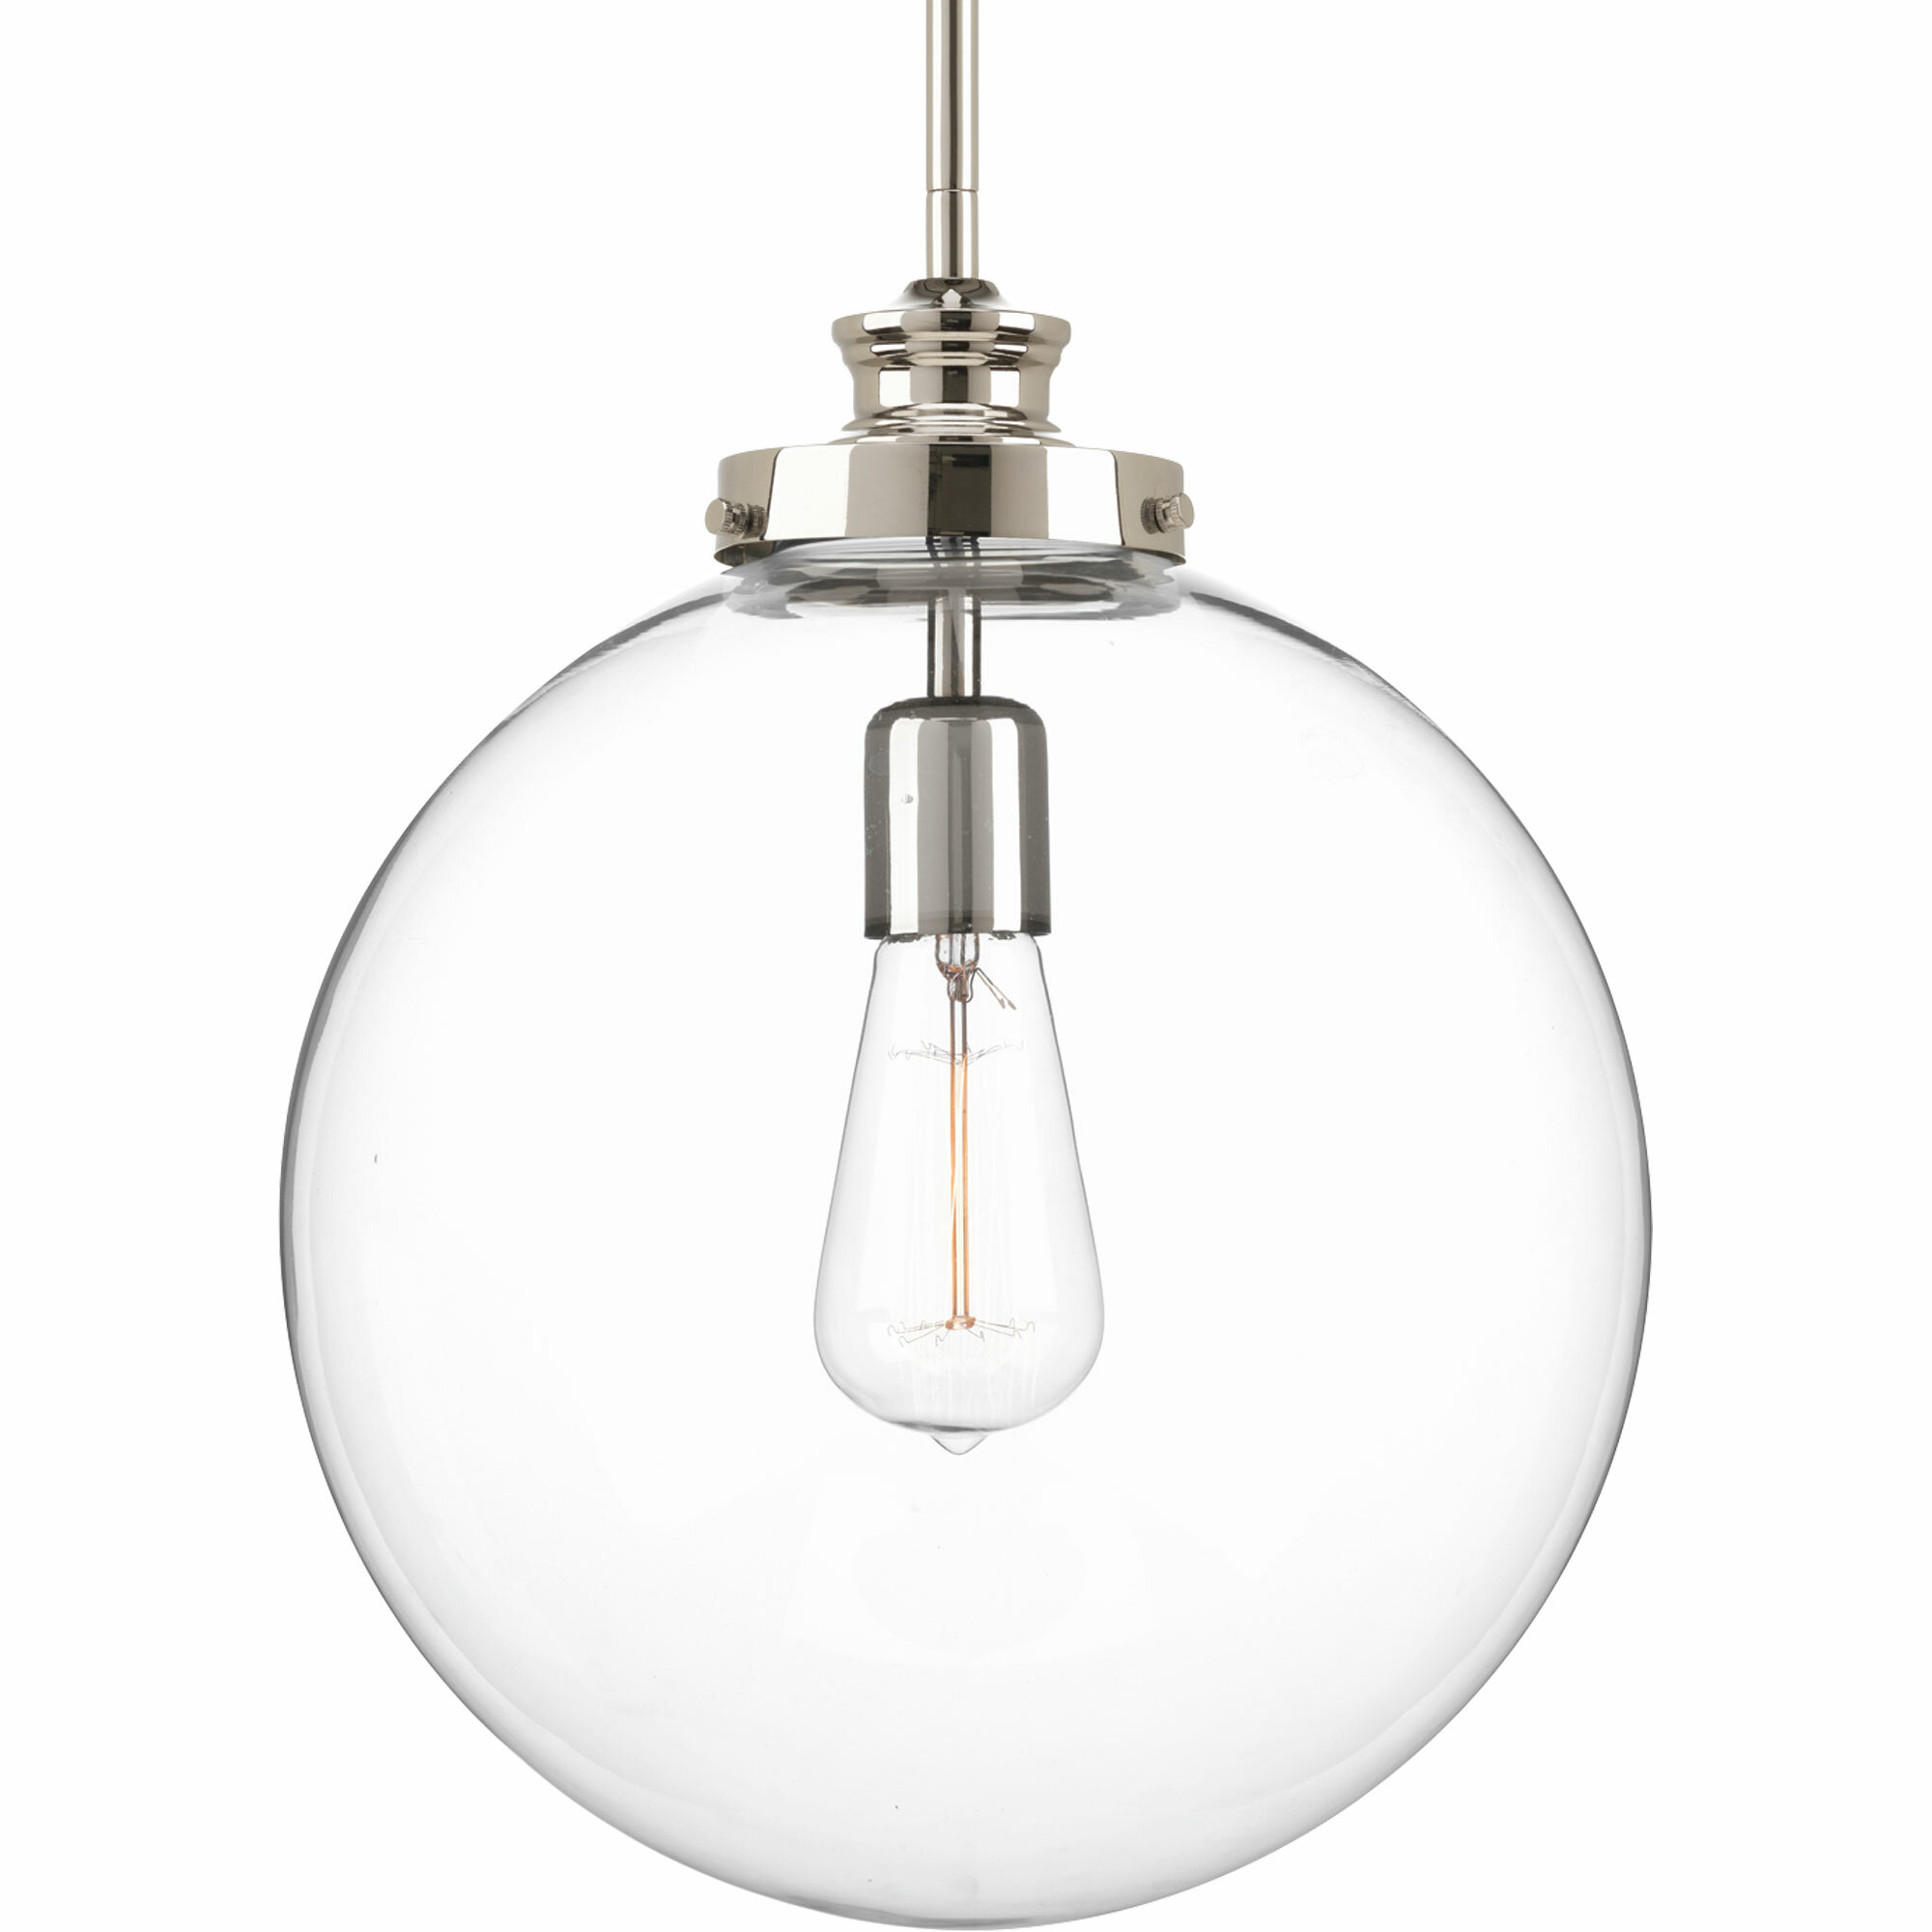 Cayden 1 Light Single Globe Pendant With Regard To Cayden 1 Light Single Globe Pendants (View 12 of 30)